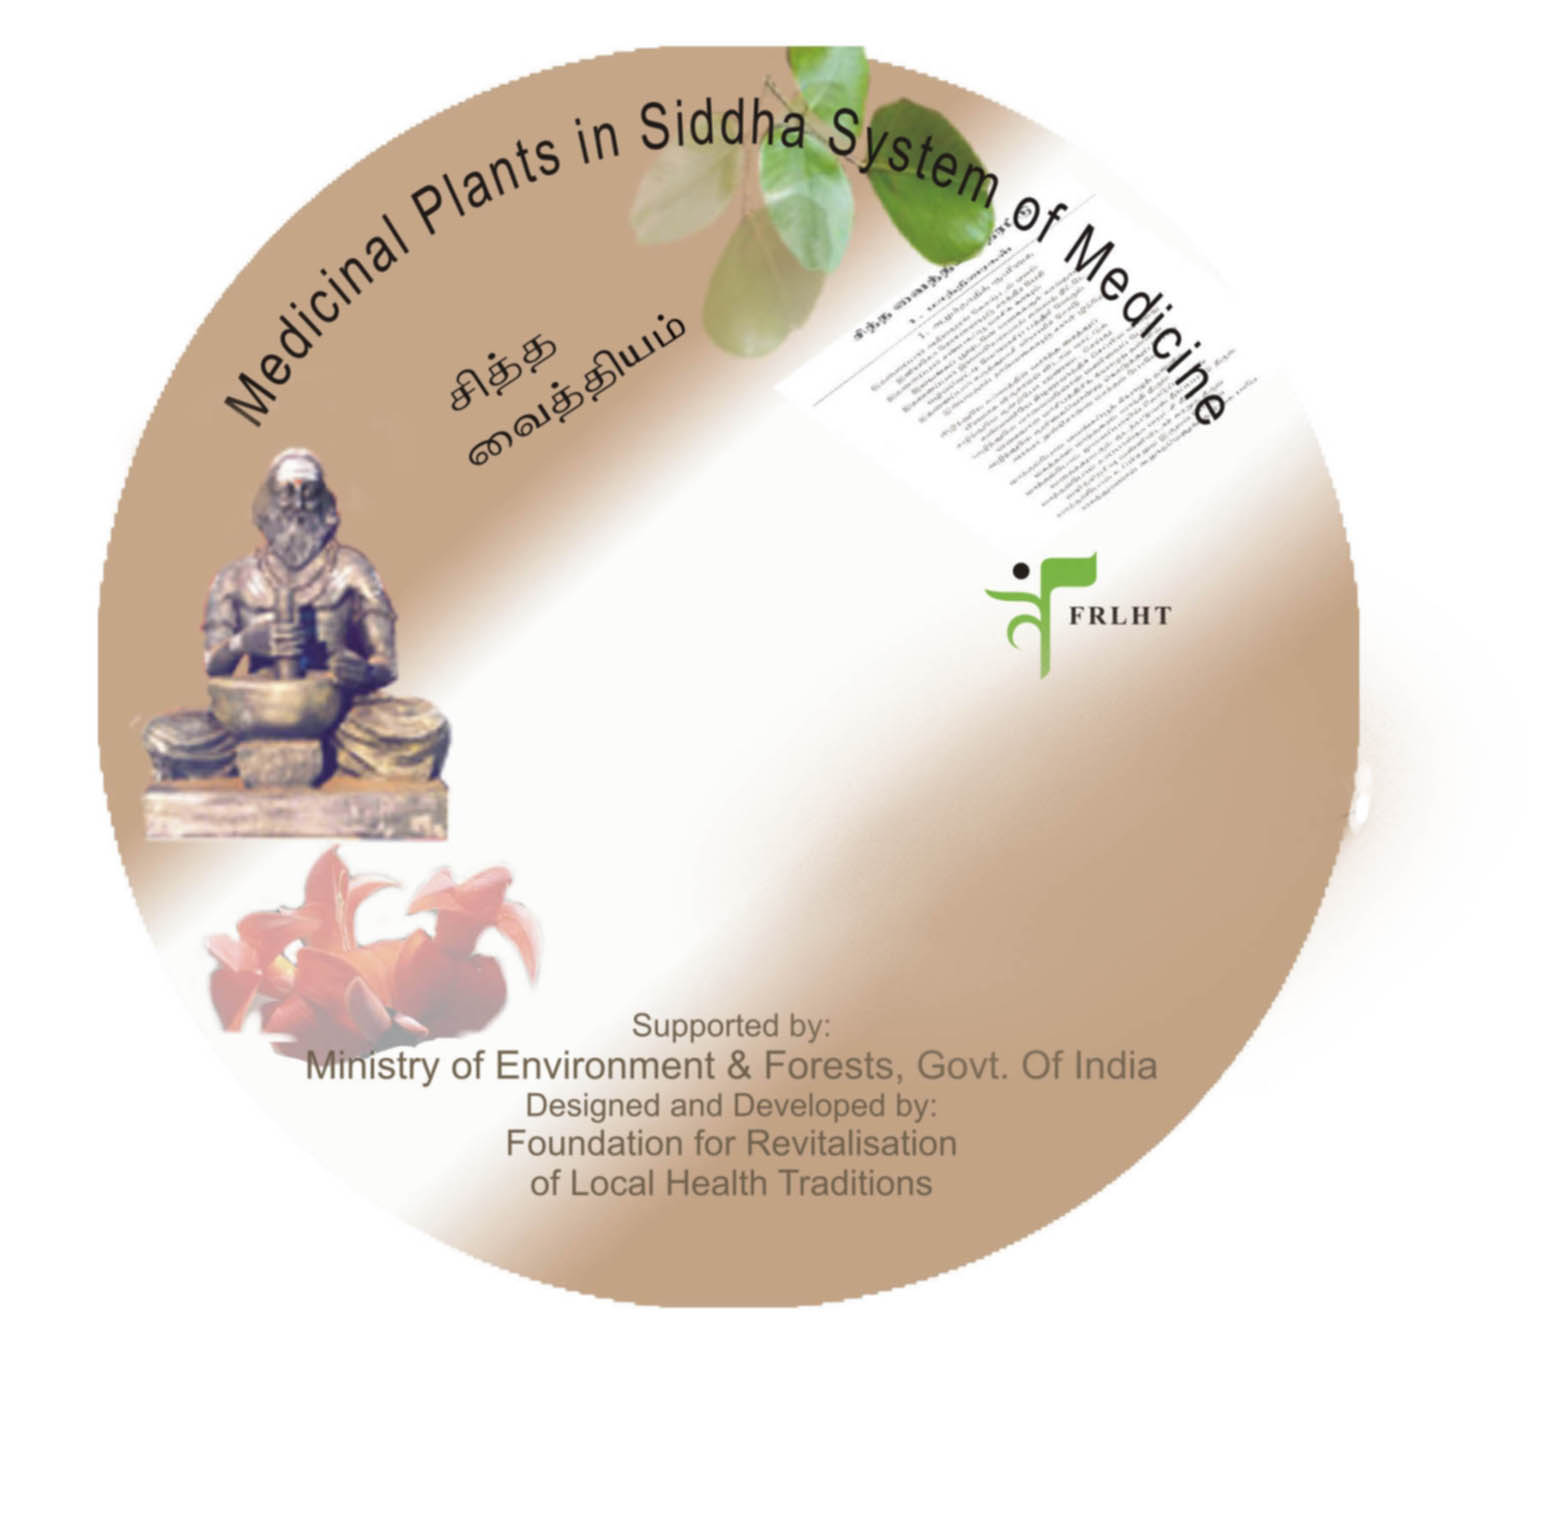 Medicinal Plants in siddha system of Medicine